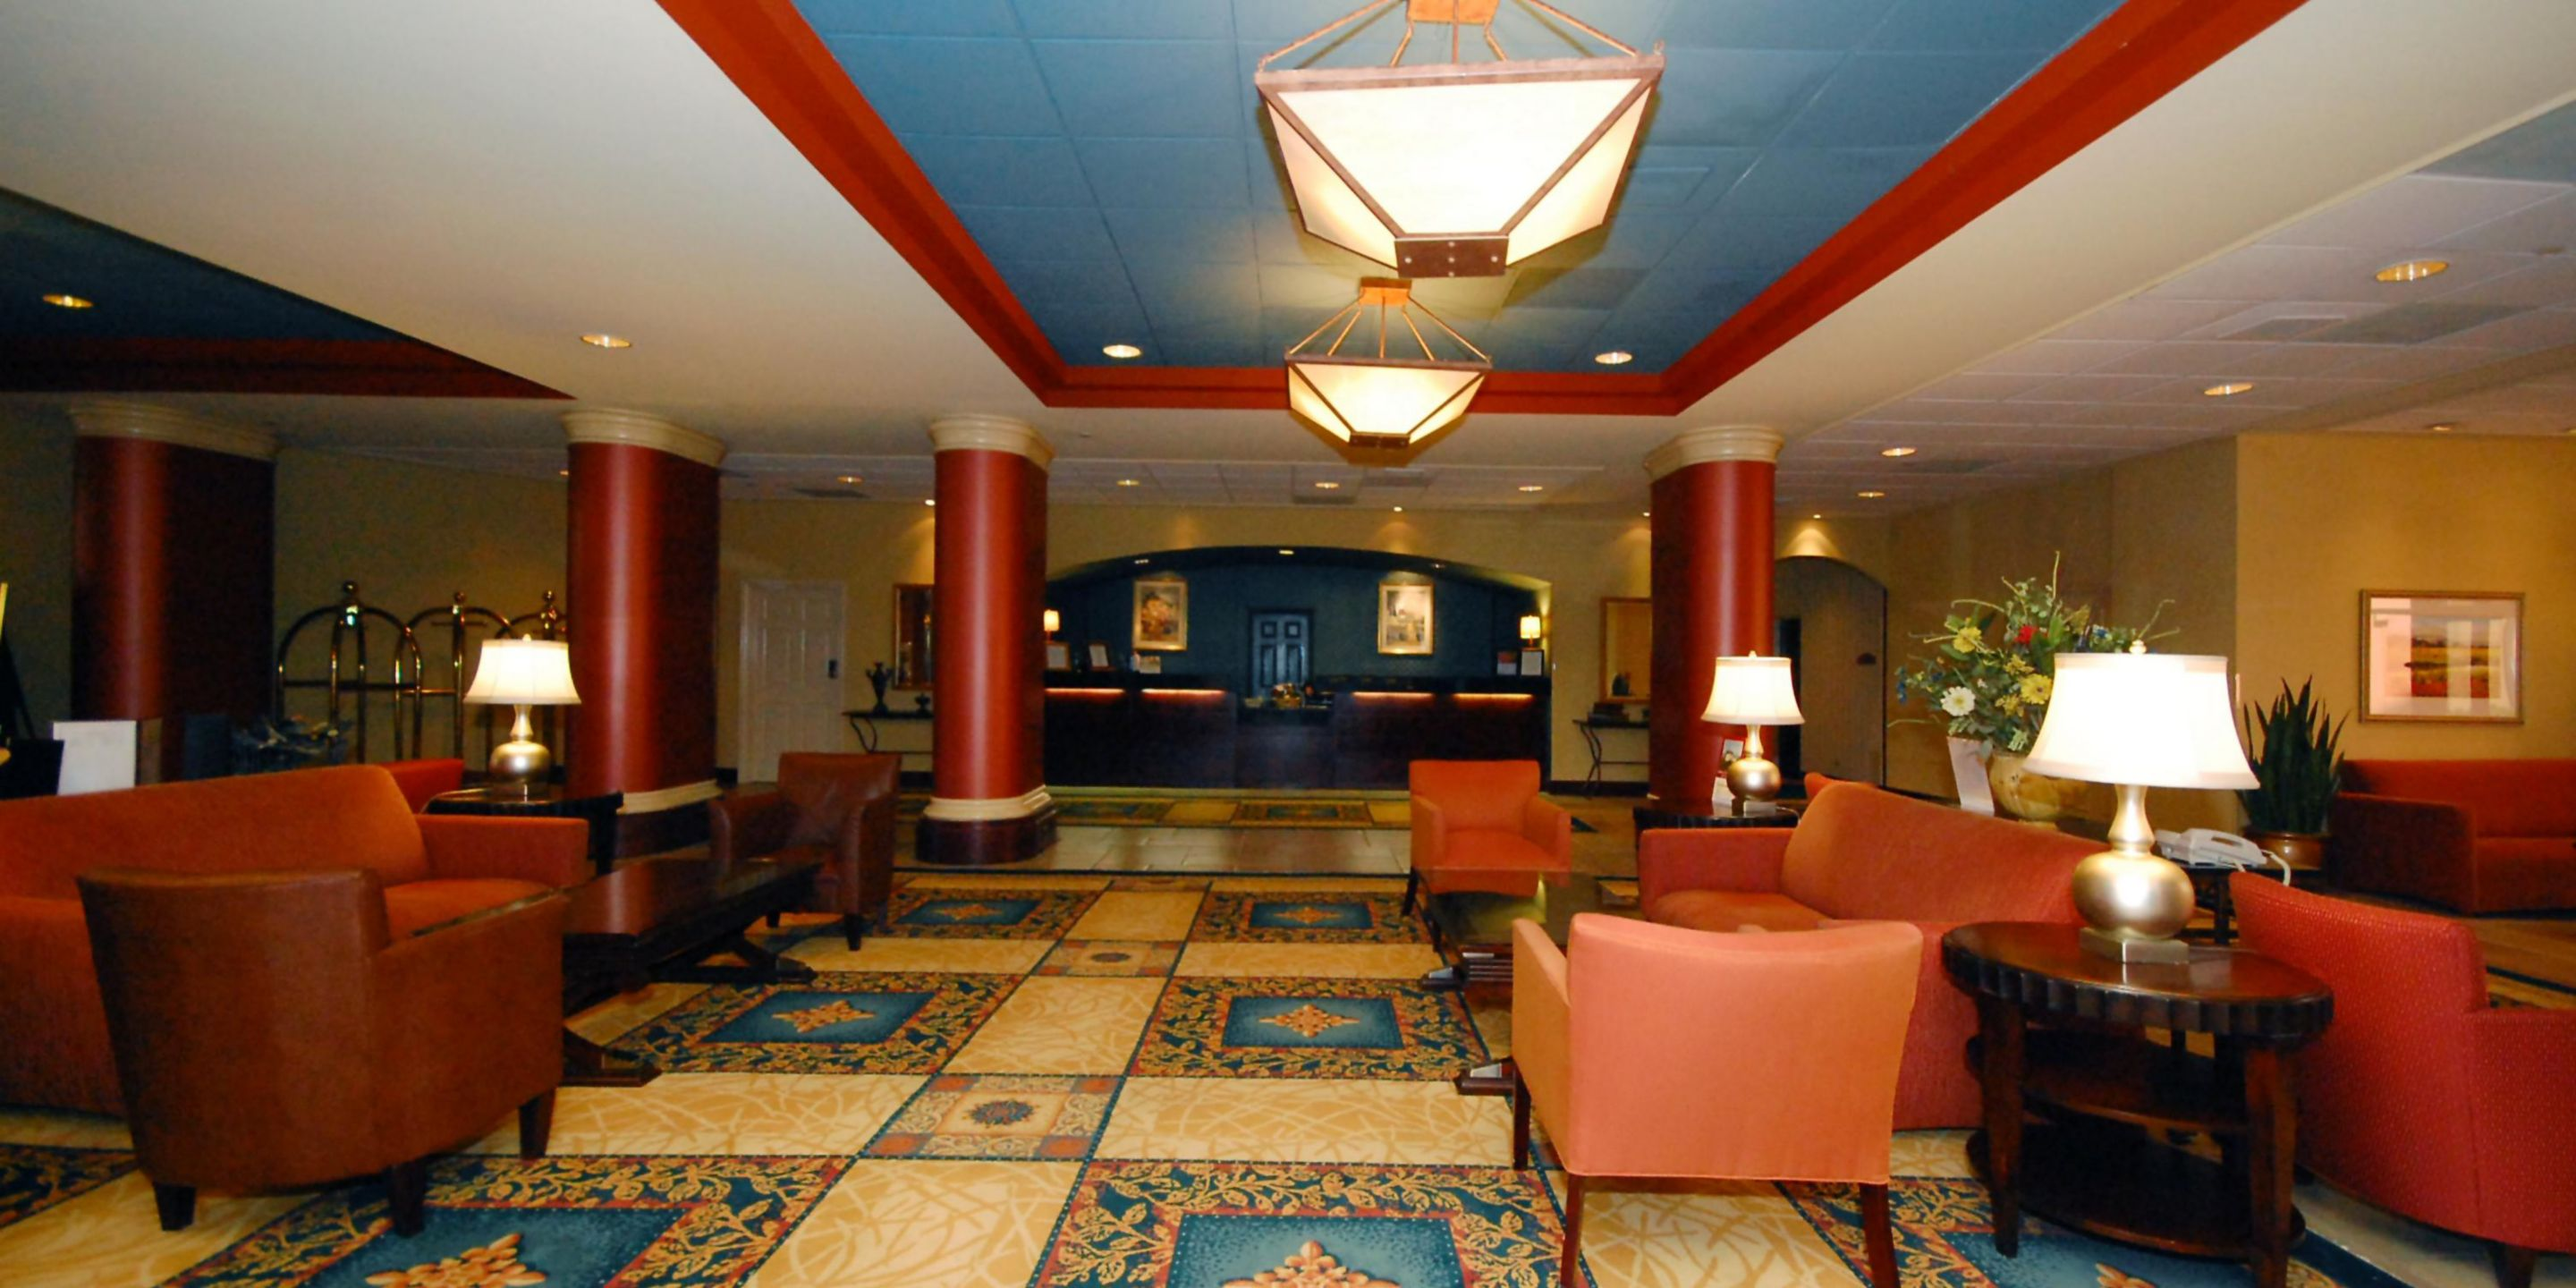 Welcome To The Crowne Plaza Austin Lobby Reception Area